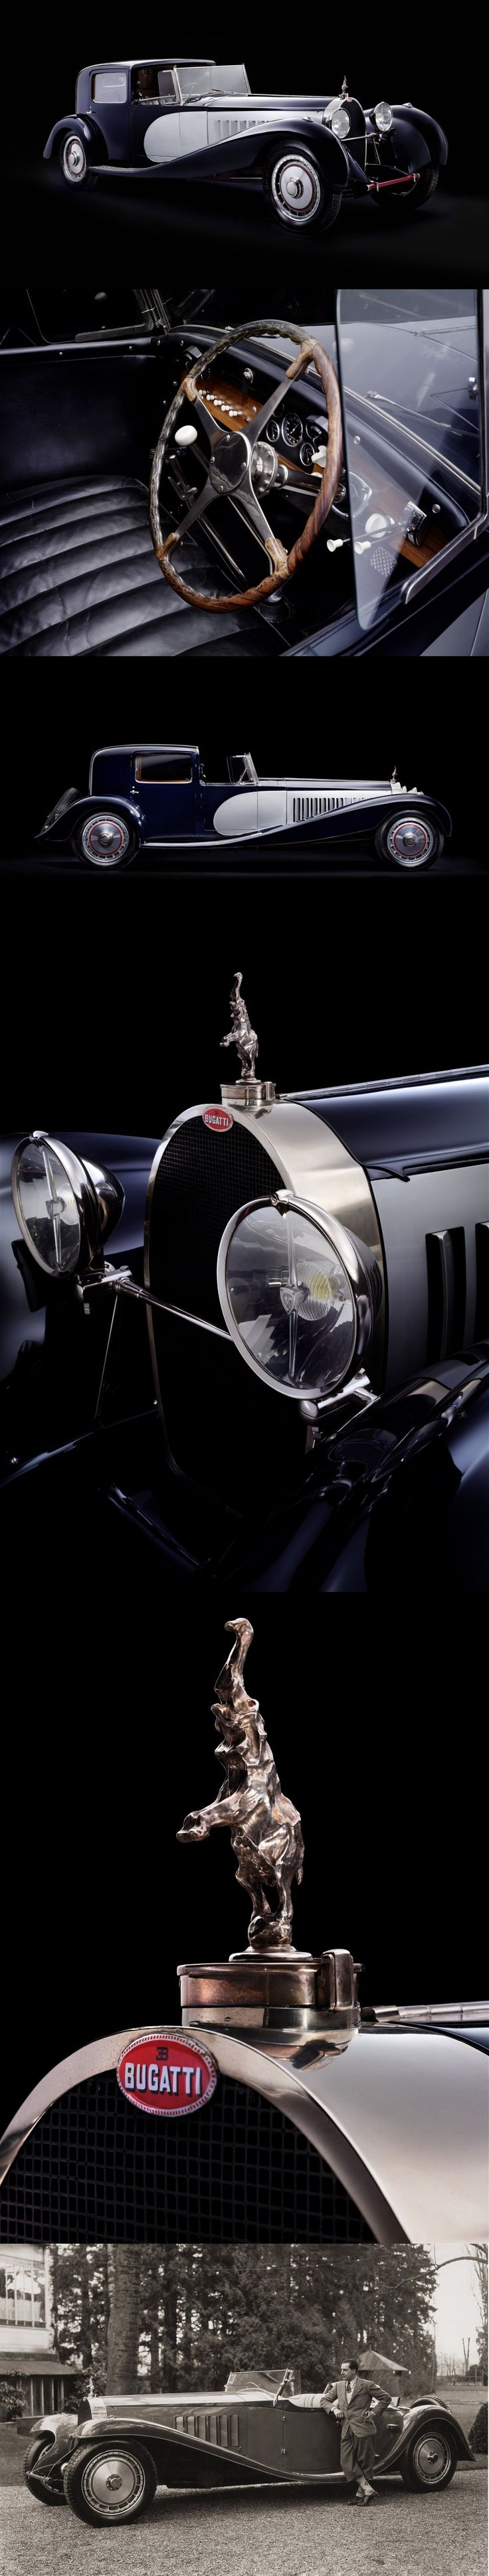 1932 Bugatti Royale (Type 41) Montecito Motor Show Sept 21st, 2014 is going to be a great show to see on CVR.                                                                                                                                                                                 More